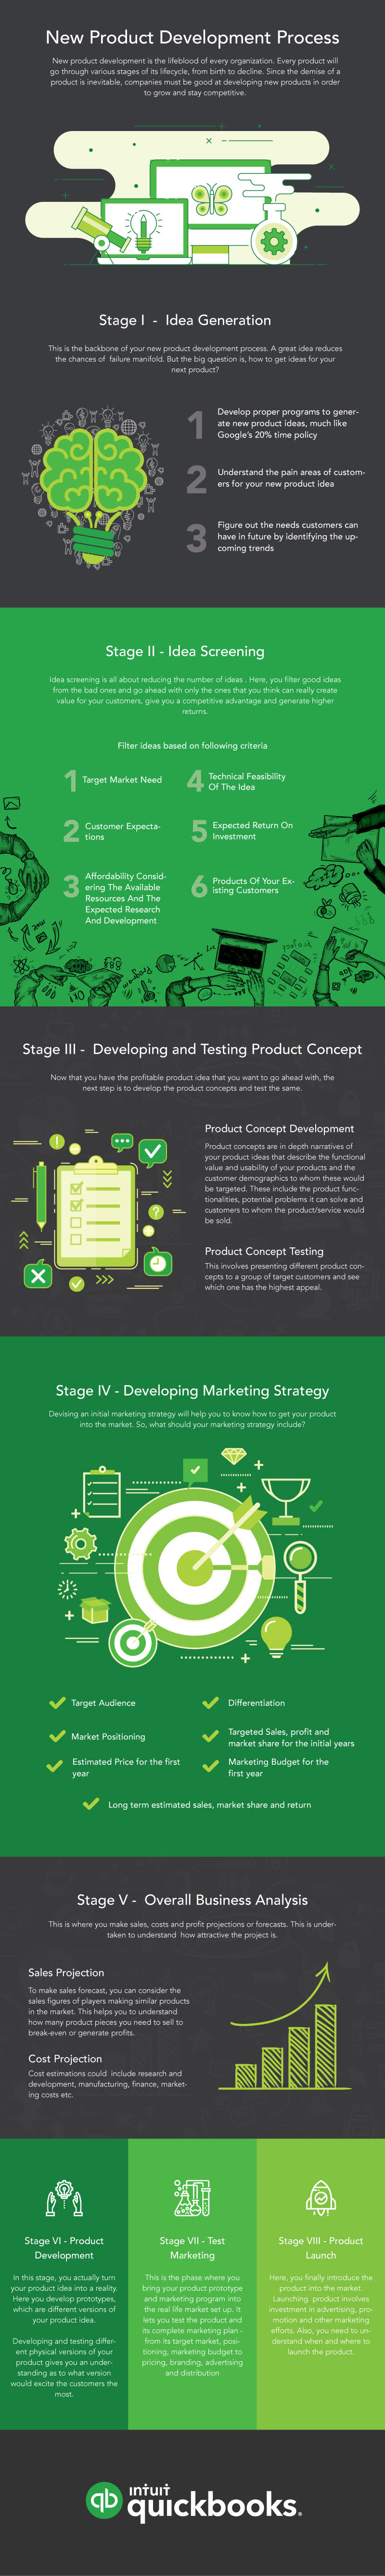 8 Stages of New Product Development Process